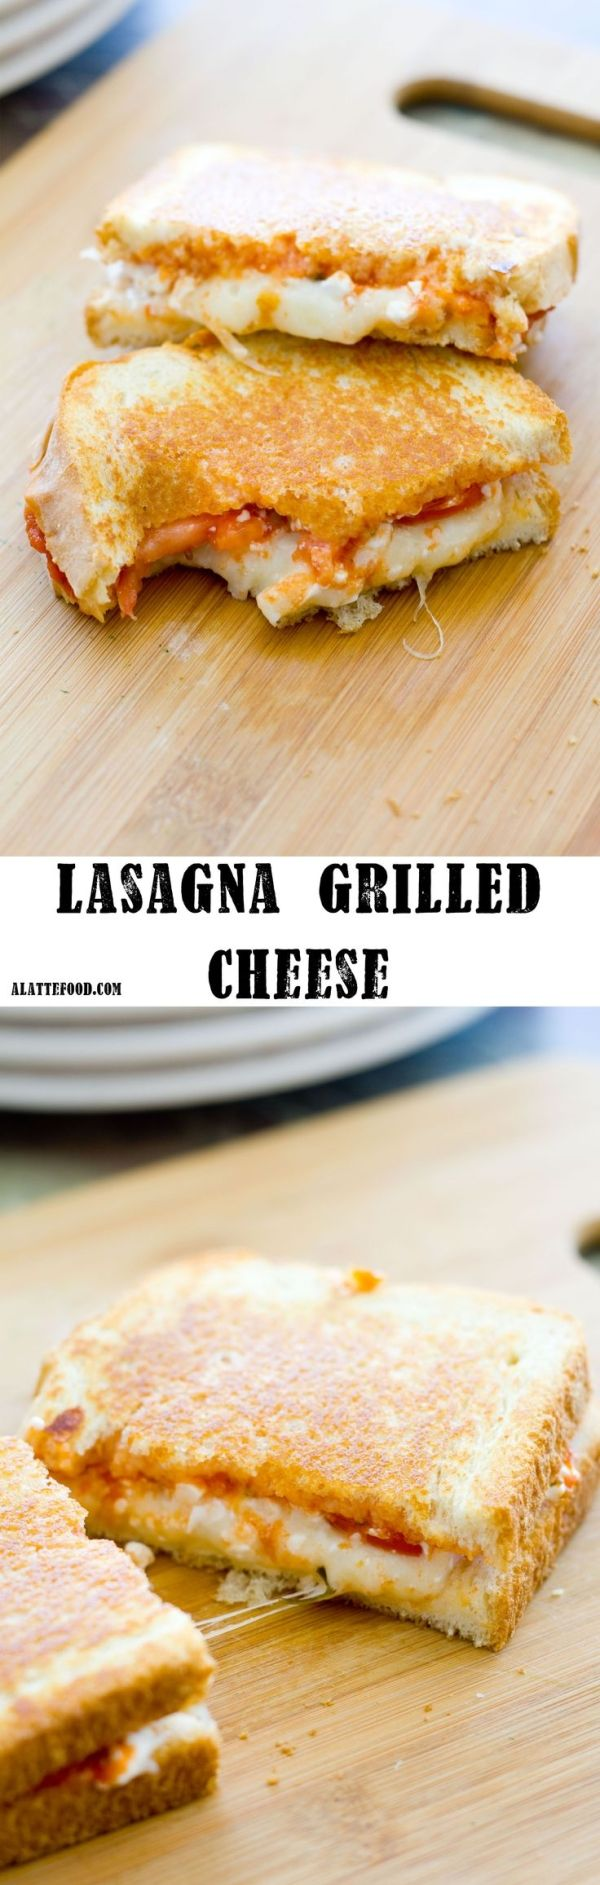 Lasagna Grilled Cheese | This sandwich is pure, unadulterated comfort food! All the lasagna ingredients sandwiched between two slices of grilled bread = Heaven! by JessyAllAround